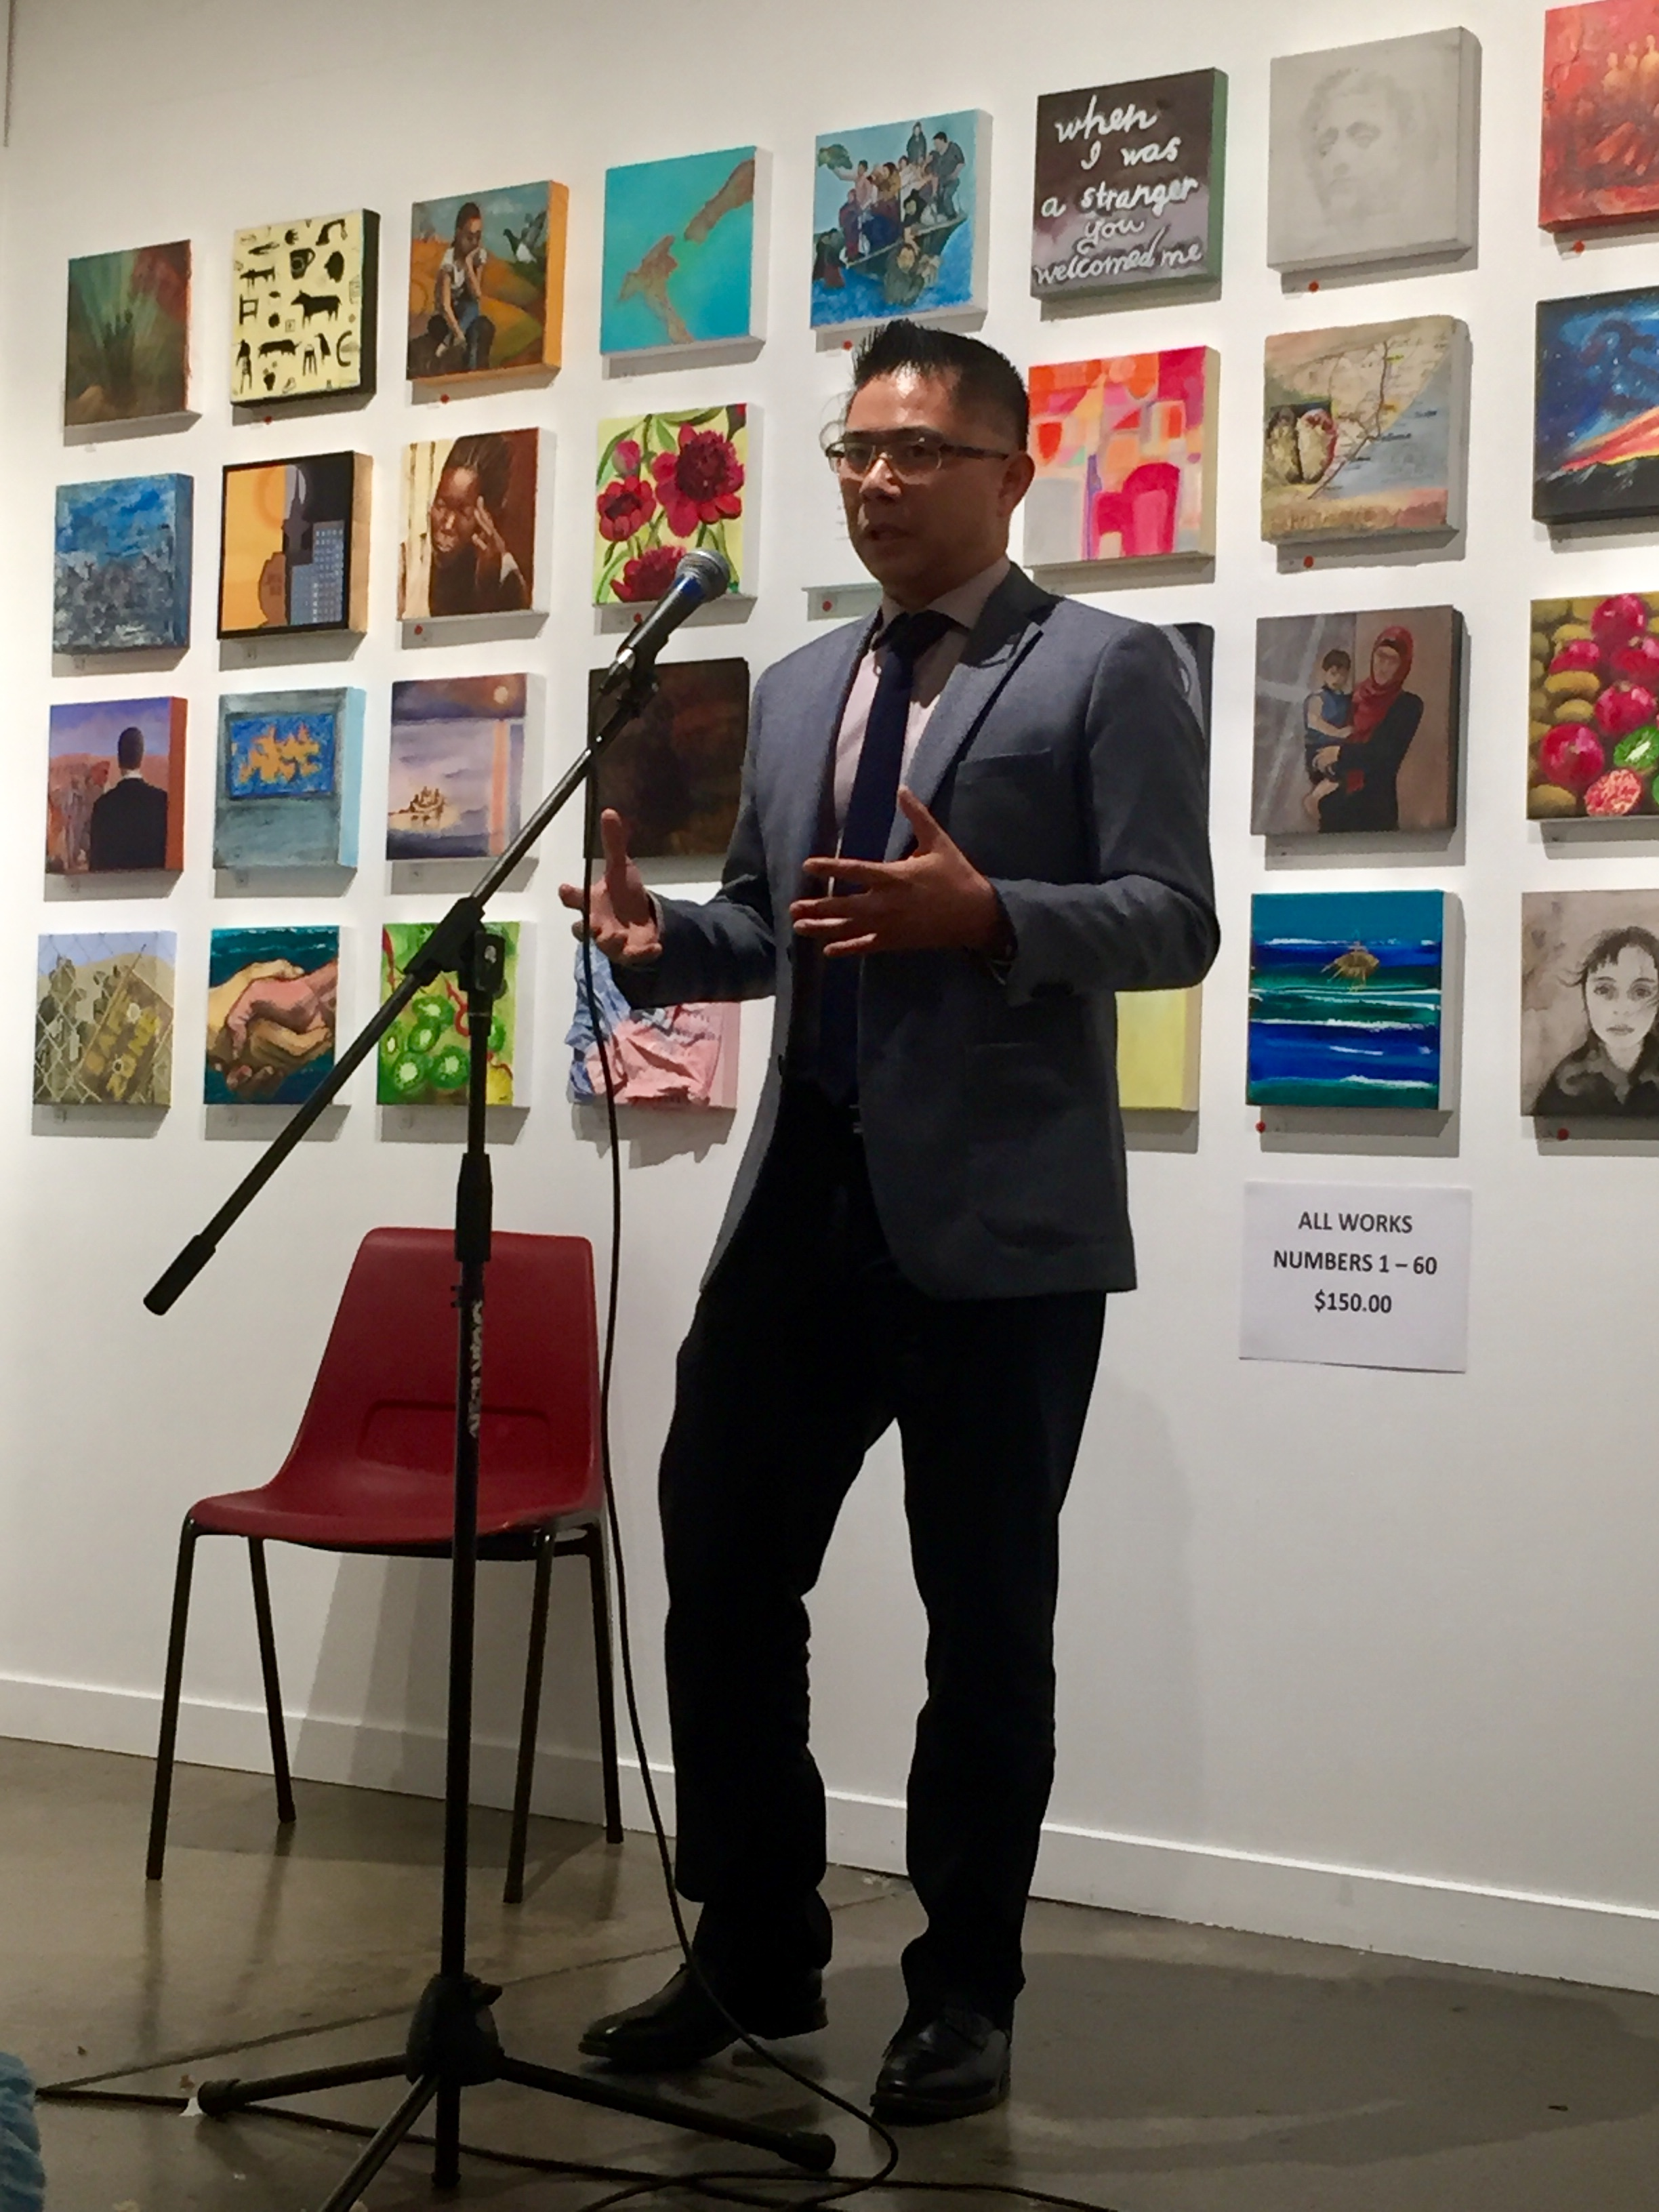 WORLD REFUGEE DAY - Trustee and founding member, Mitchell Pham shares his story at an event to celebrate World Refugee Day.